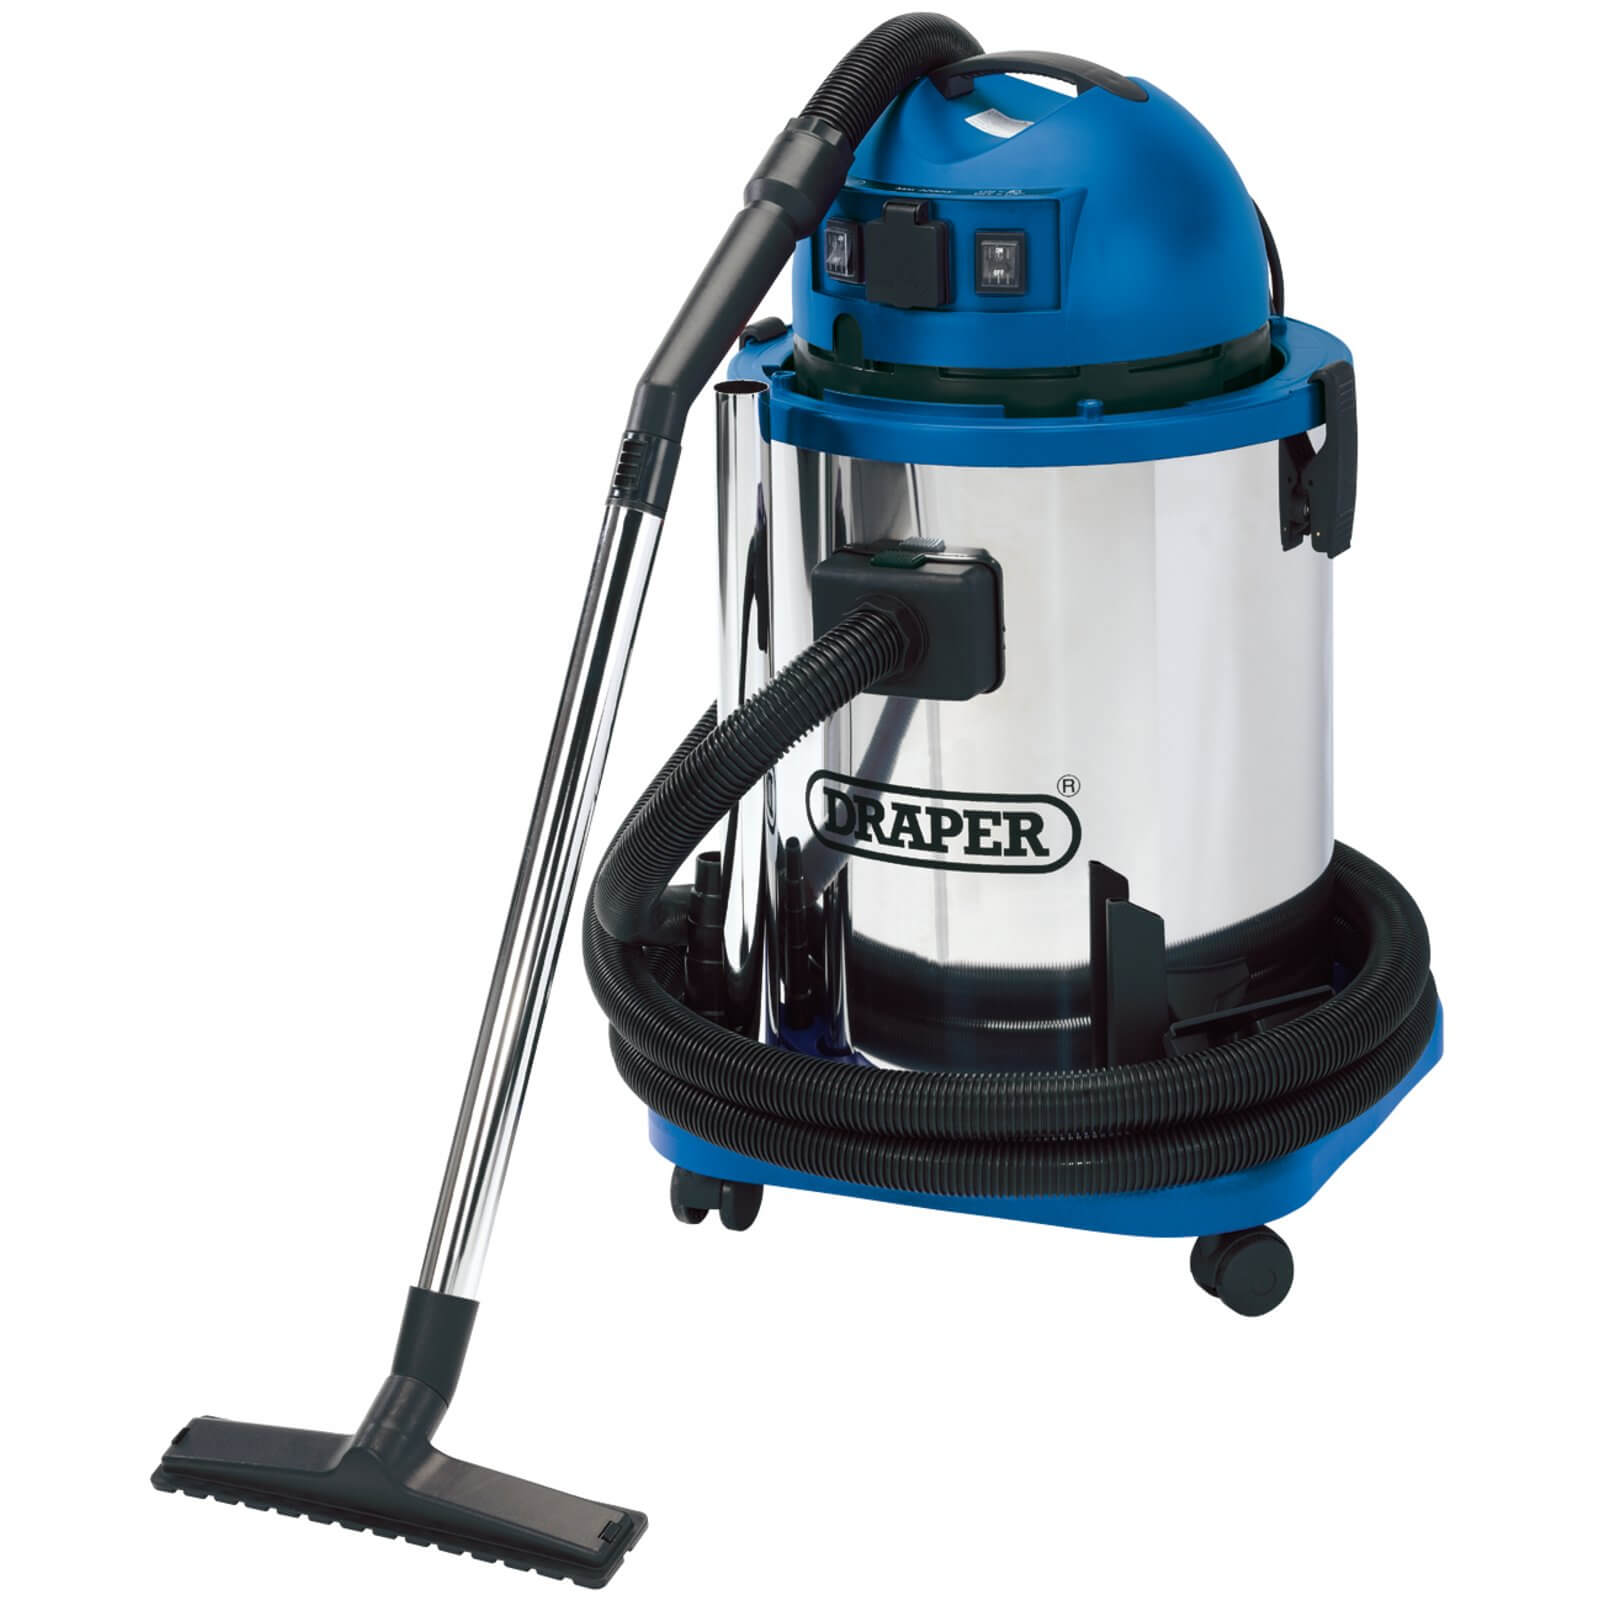 Image of Draper WDV50SS Wet and Dry Vacuum Cleaner 240v